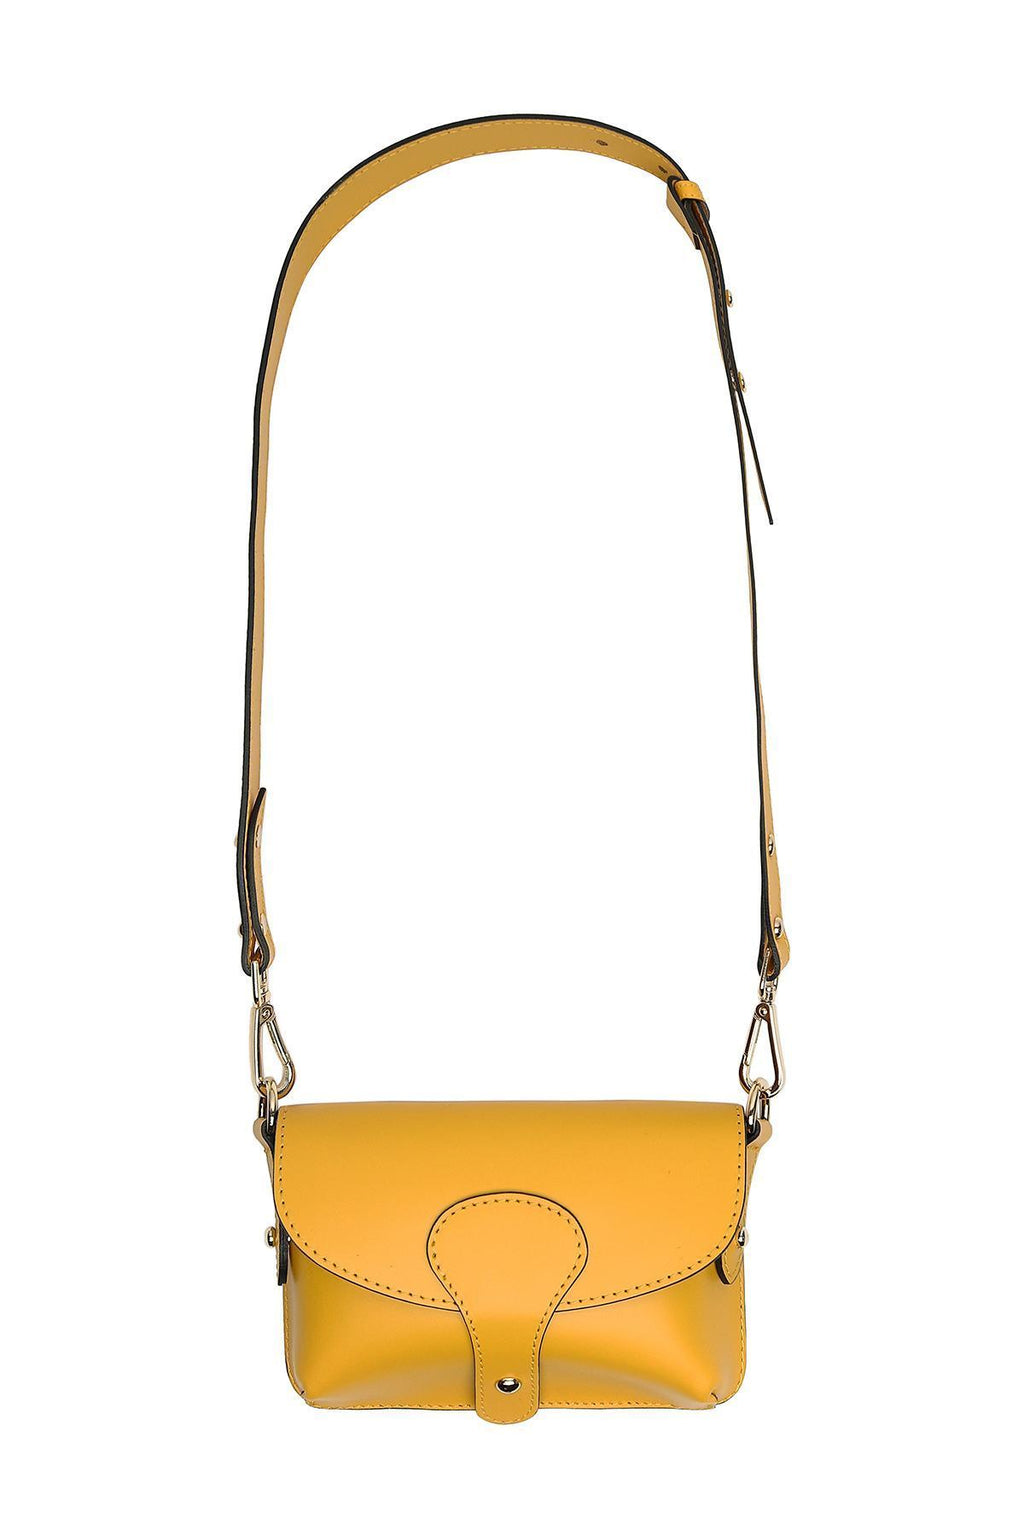 Cherry Paris - Philomene bum clutch bag yellow